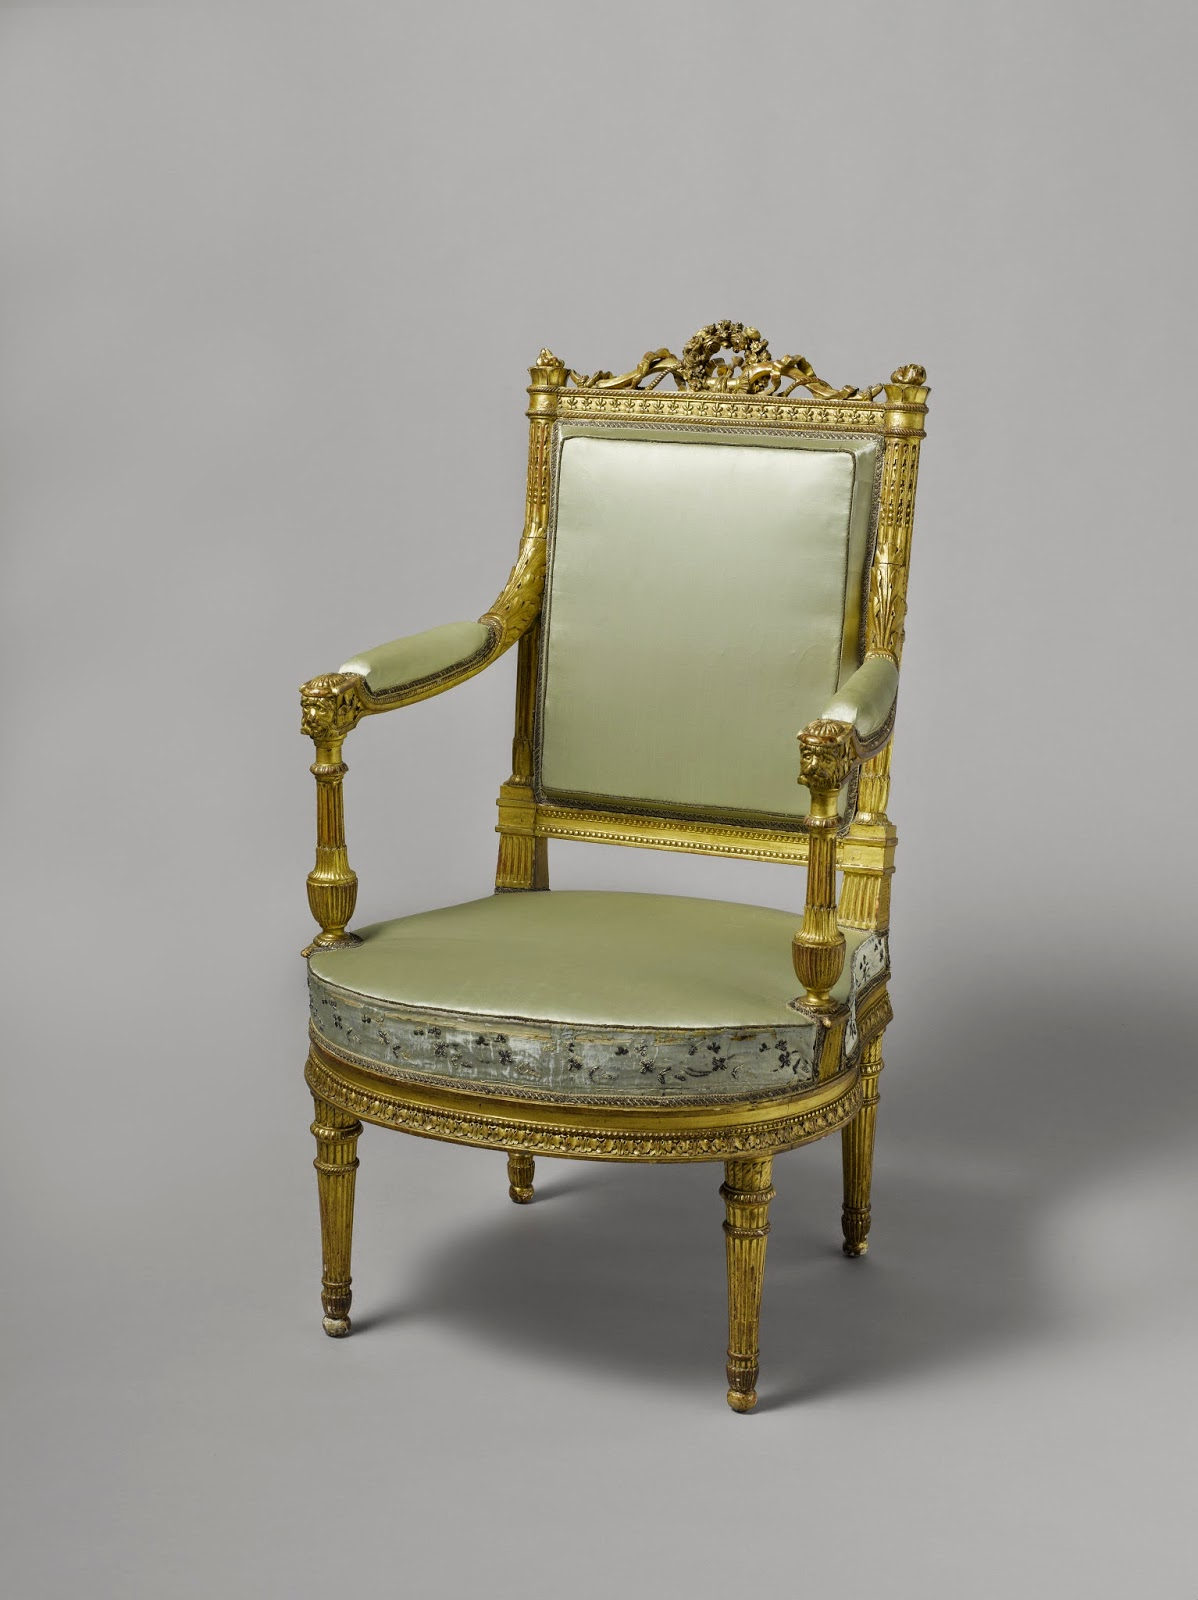 Pair of armchairs, Georges Jacob, c. 1787